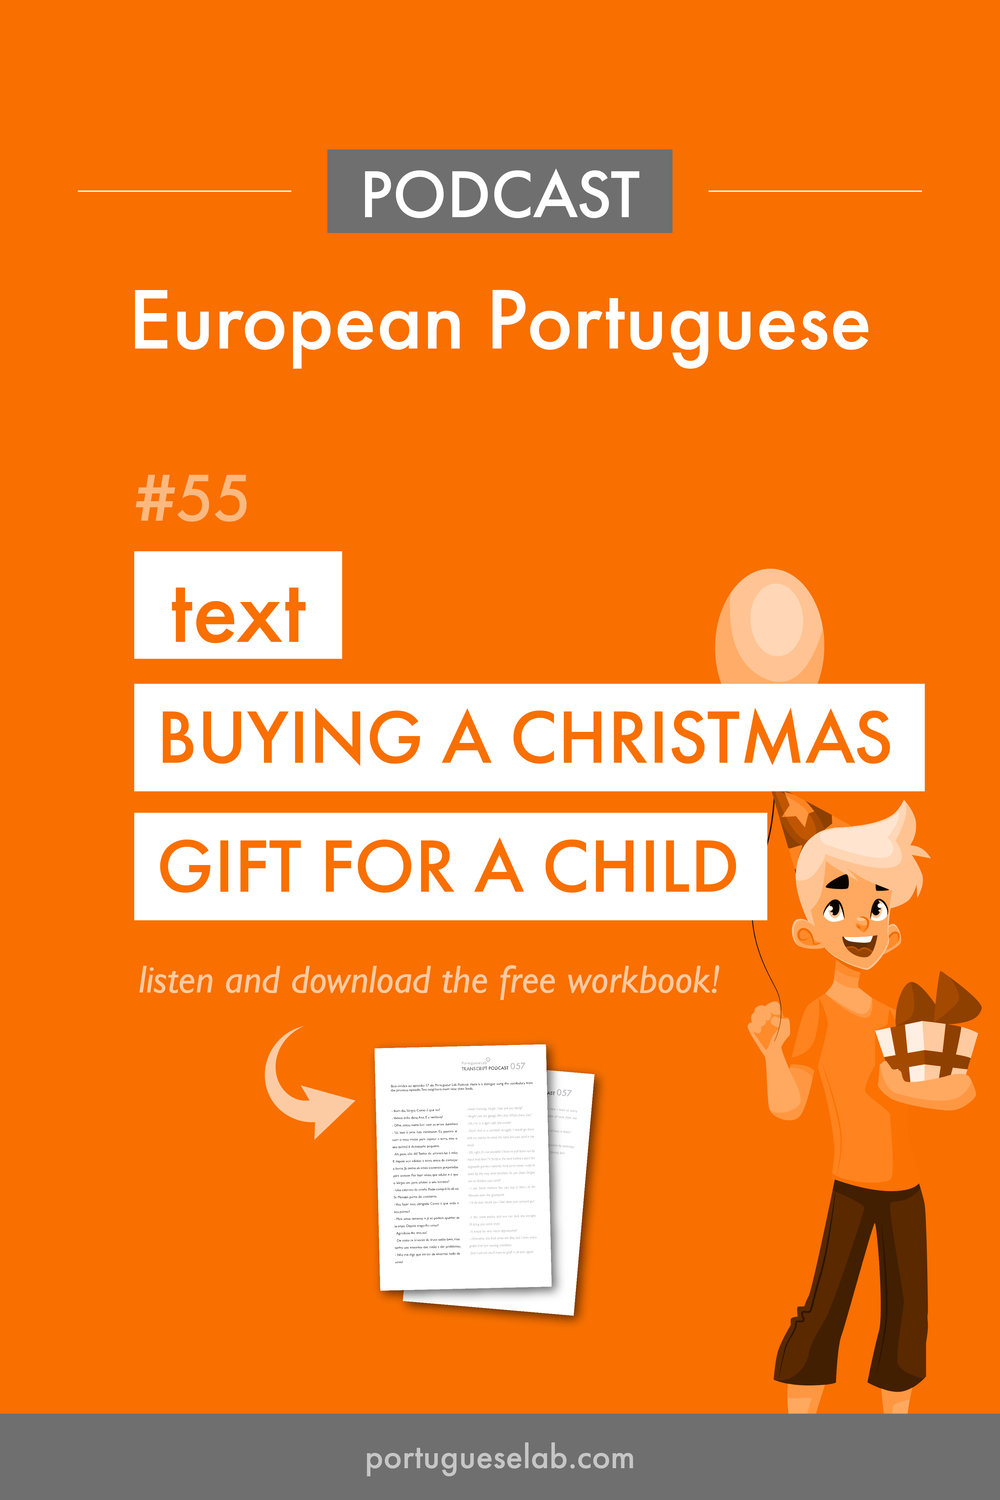 Portuguese Lab Podcast - European Portuguese - 55 - Text - Buying a Christmas gift for a child.jpg